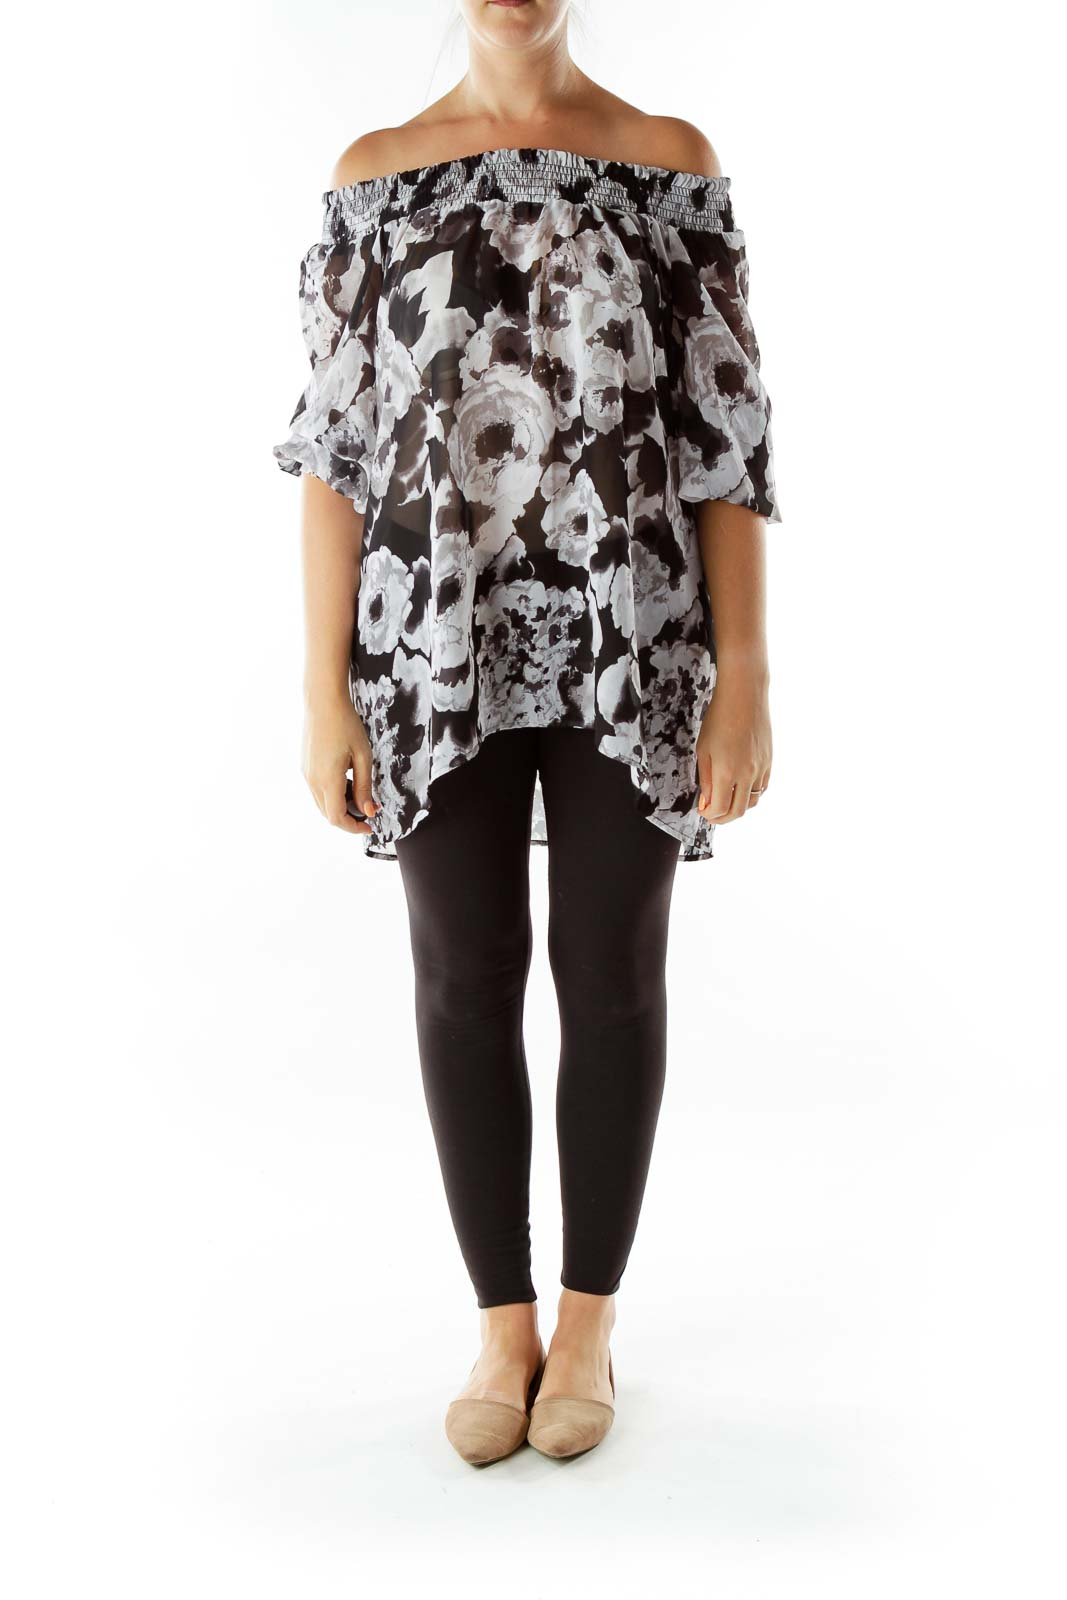 Black Gray Floral Off-Shoulder Top